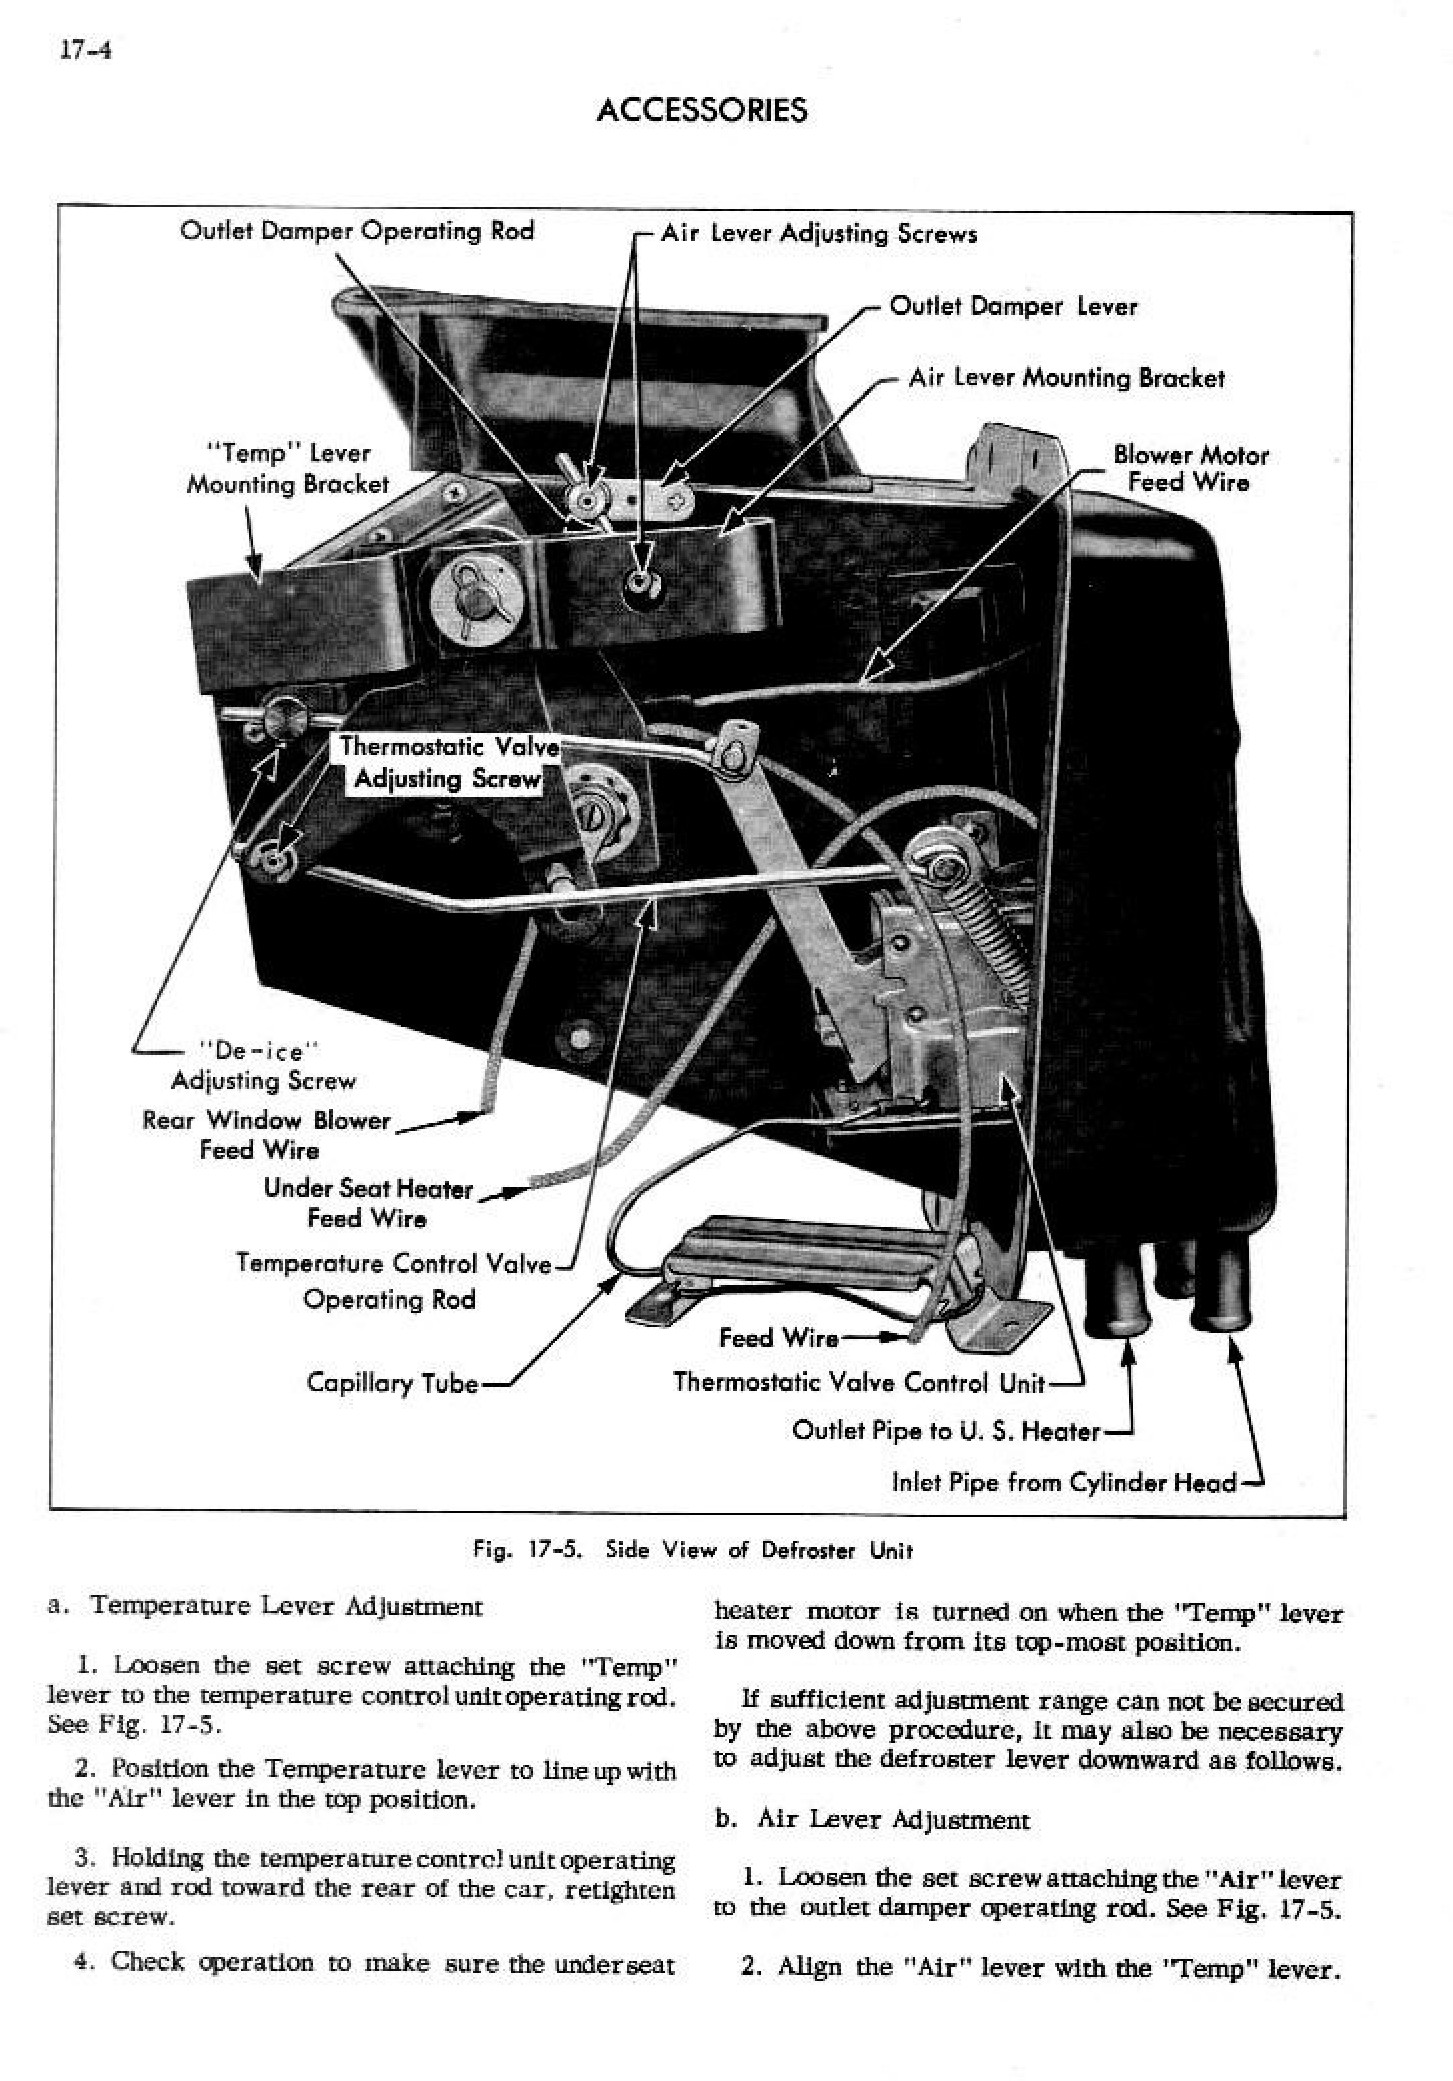 1952 Cadillac Shop Manual- Accessories Page 4 of 20